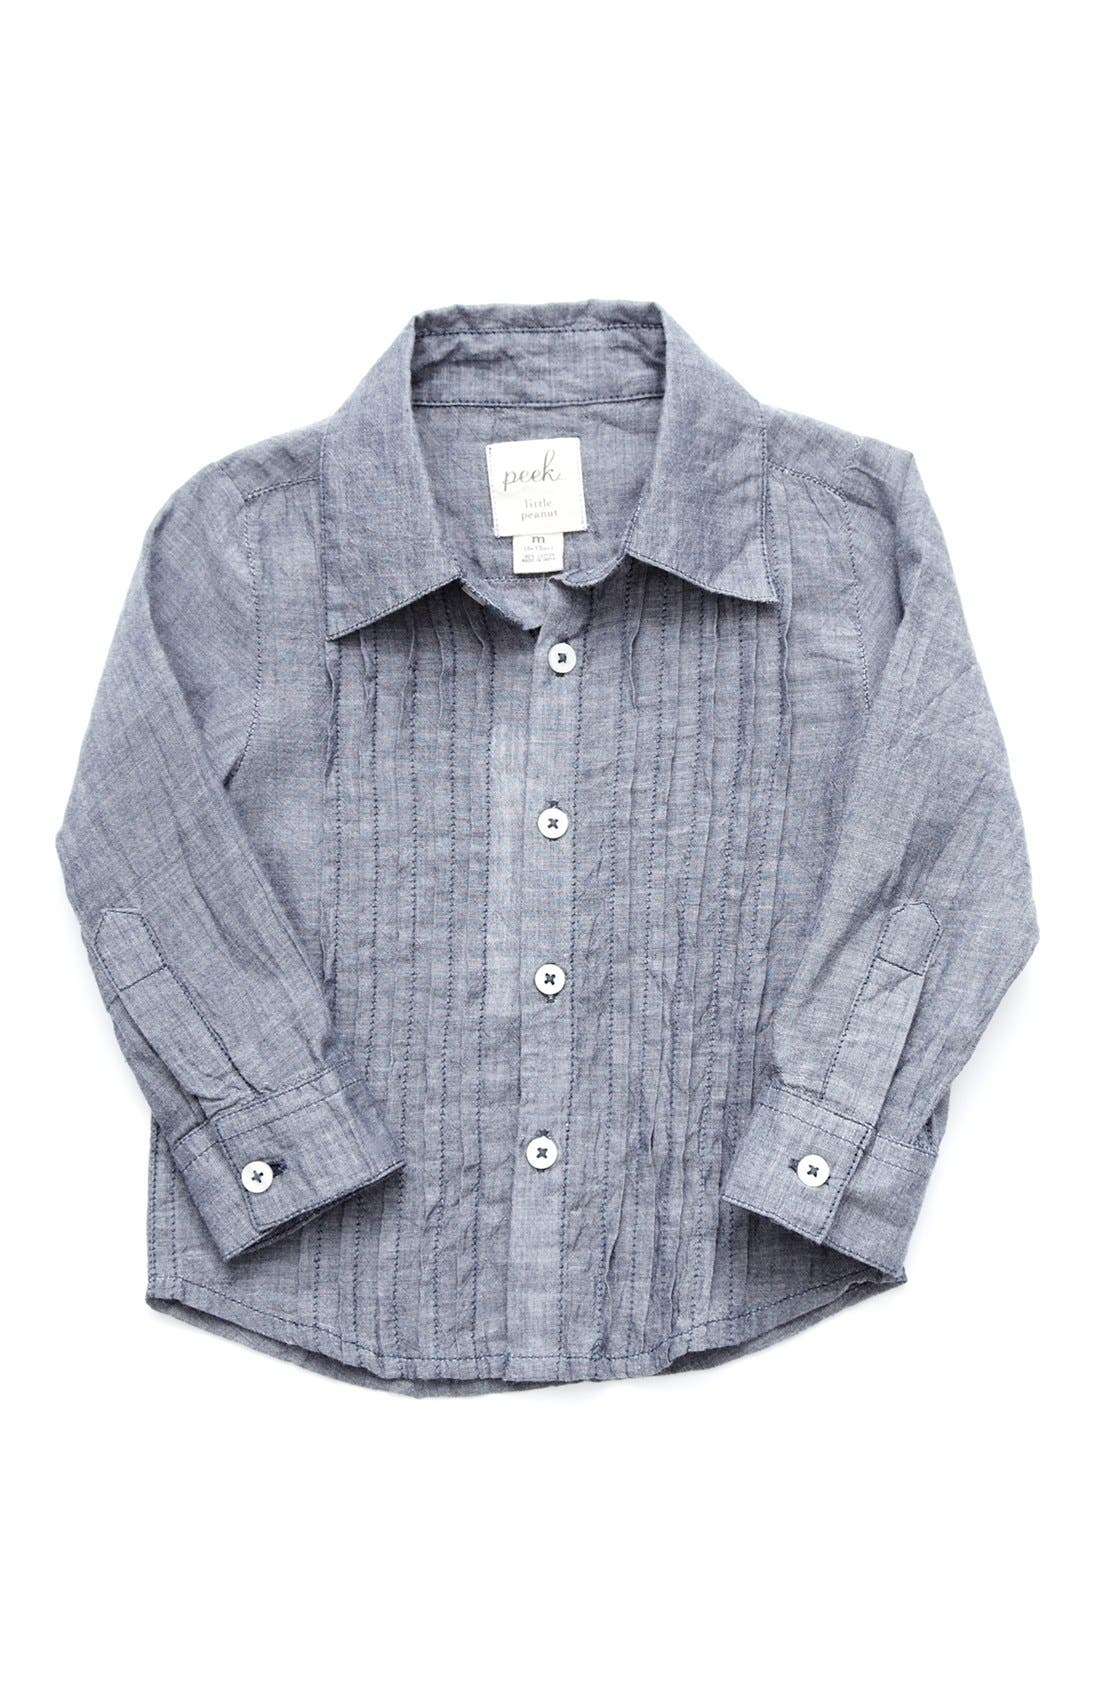 Alternate Image 1 Selected - Peek 'Arthur' Chambray Sport Shirt (Baby Boys)